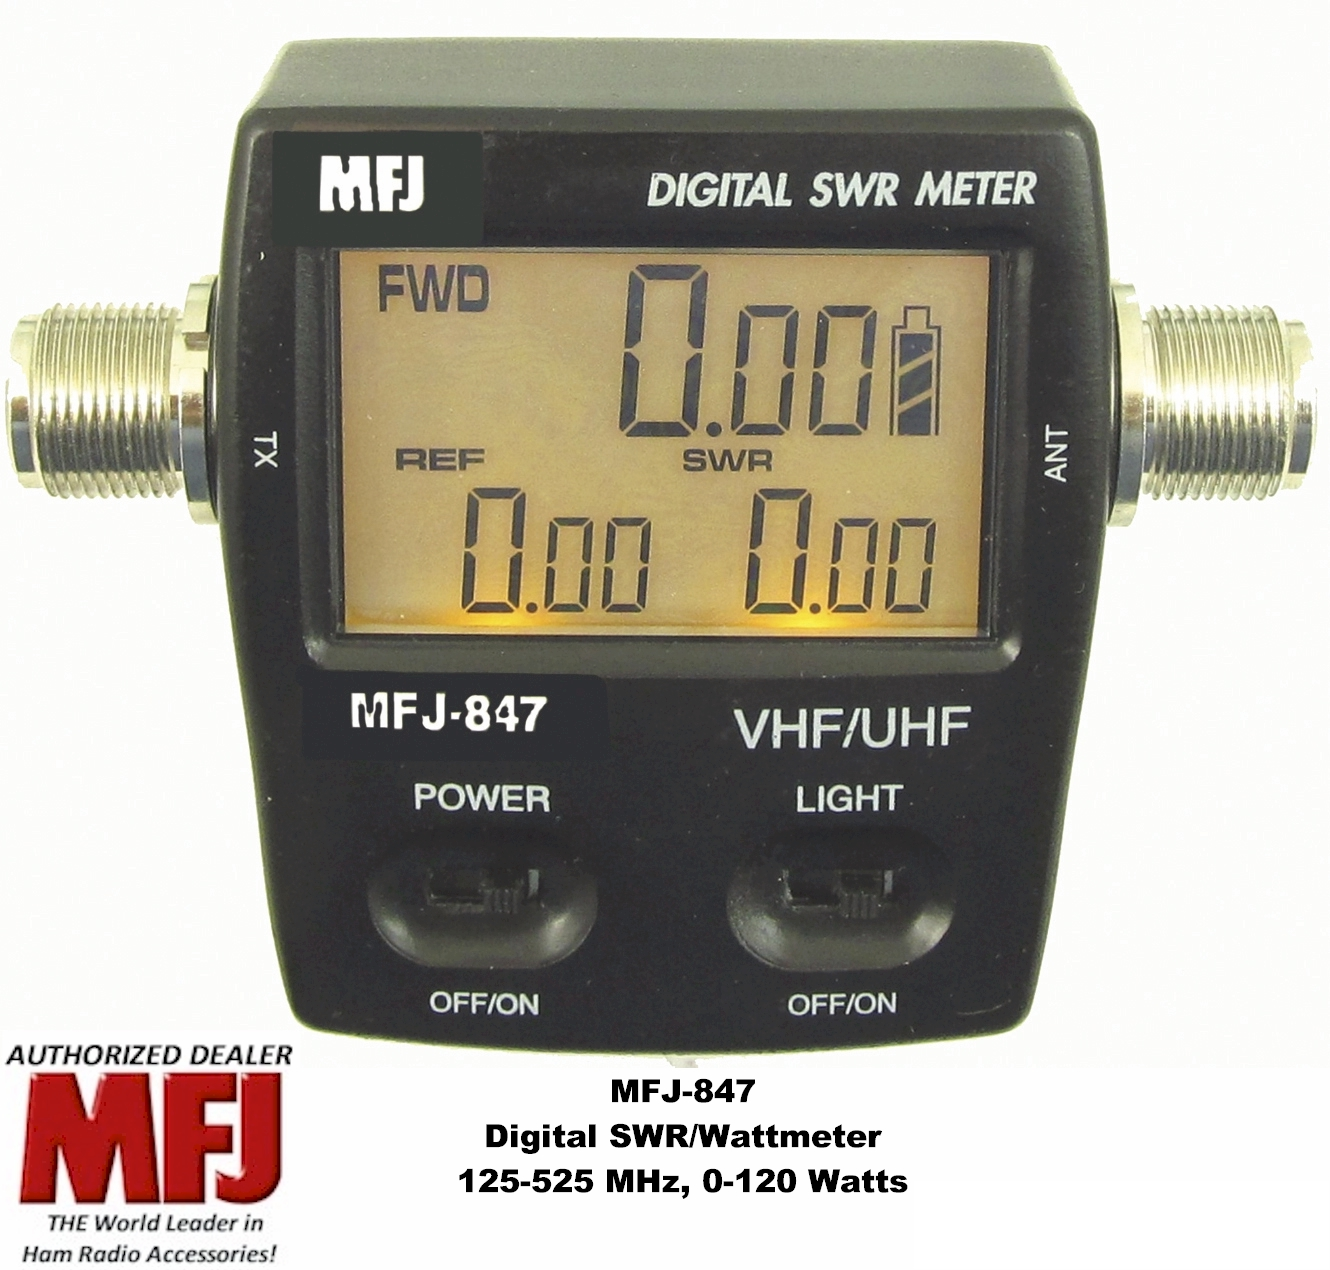 Details about MFJ 847 Digital SWR/Power/Wattmeter VHF/UHF 125-525 MHZ, 120  Watts Mobile/Base